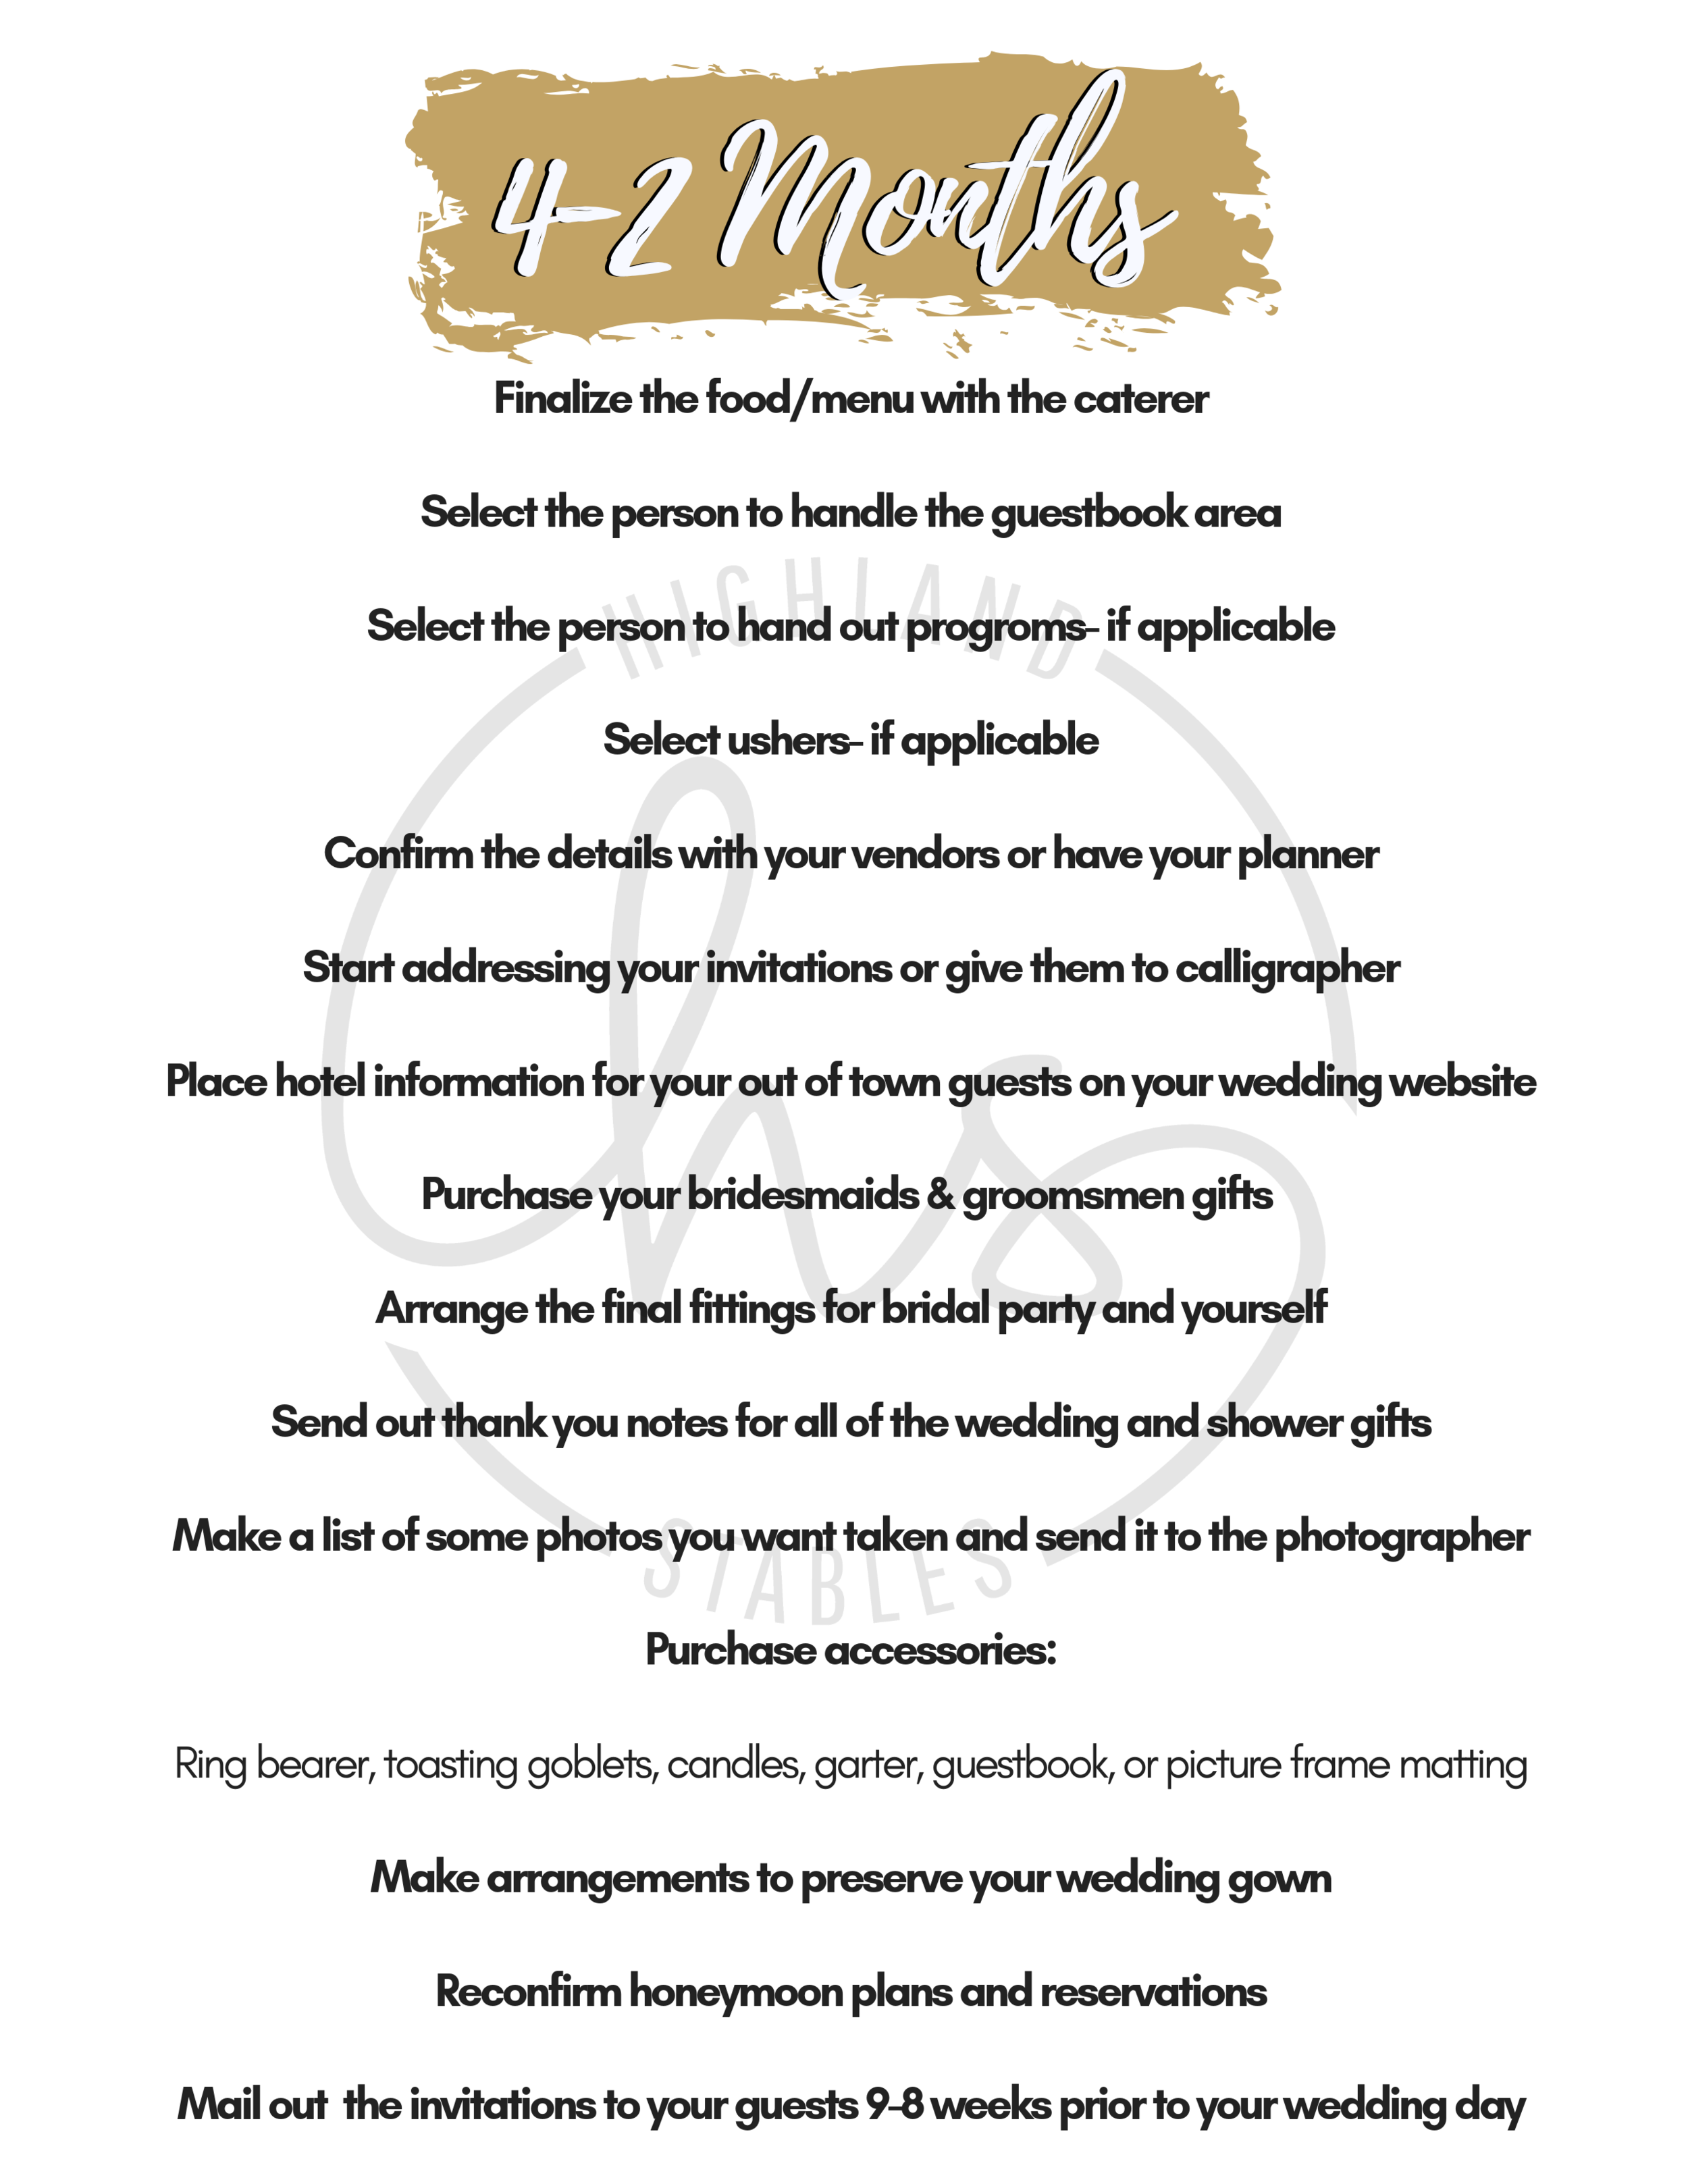 Wedding Planning Guide-4.png